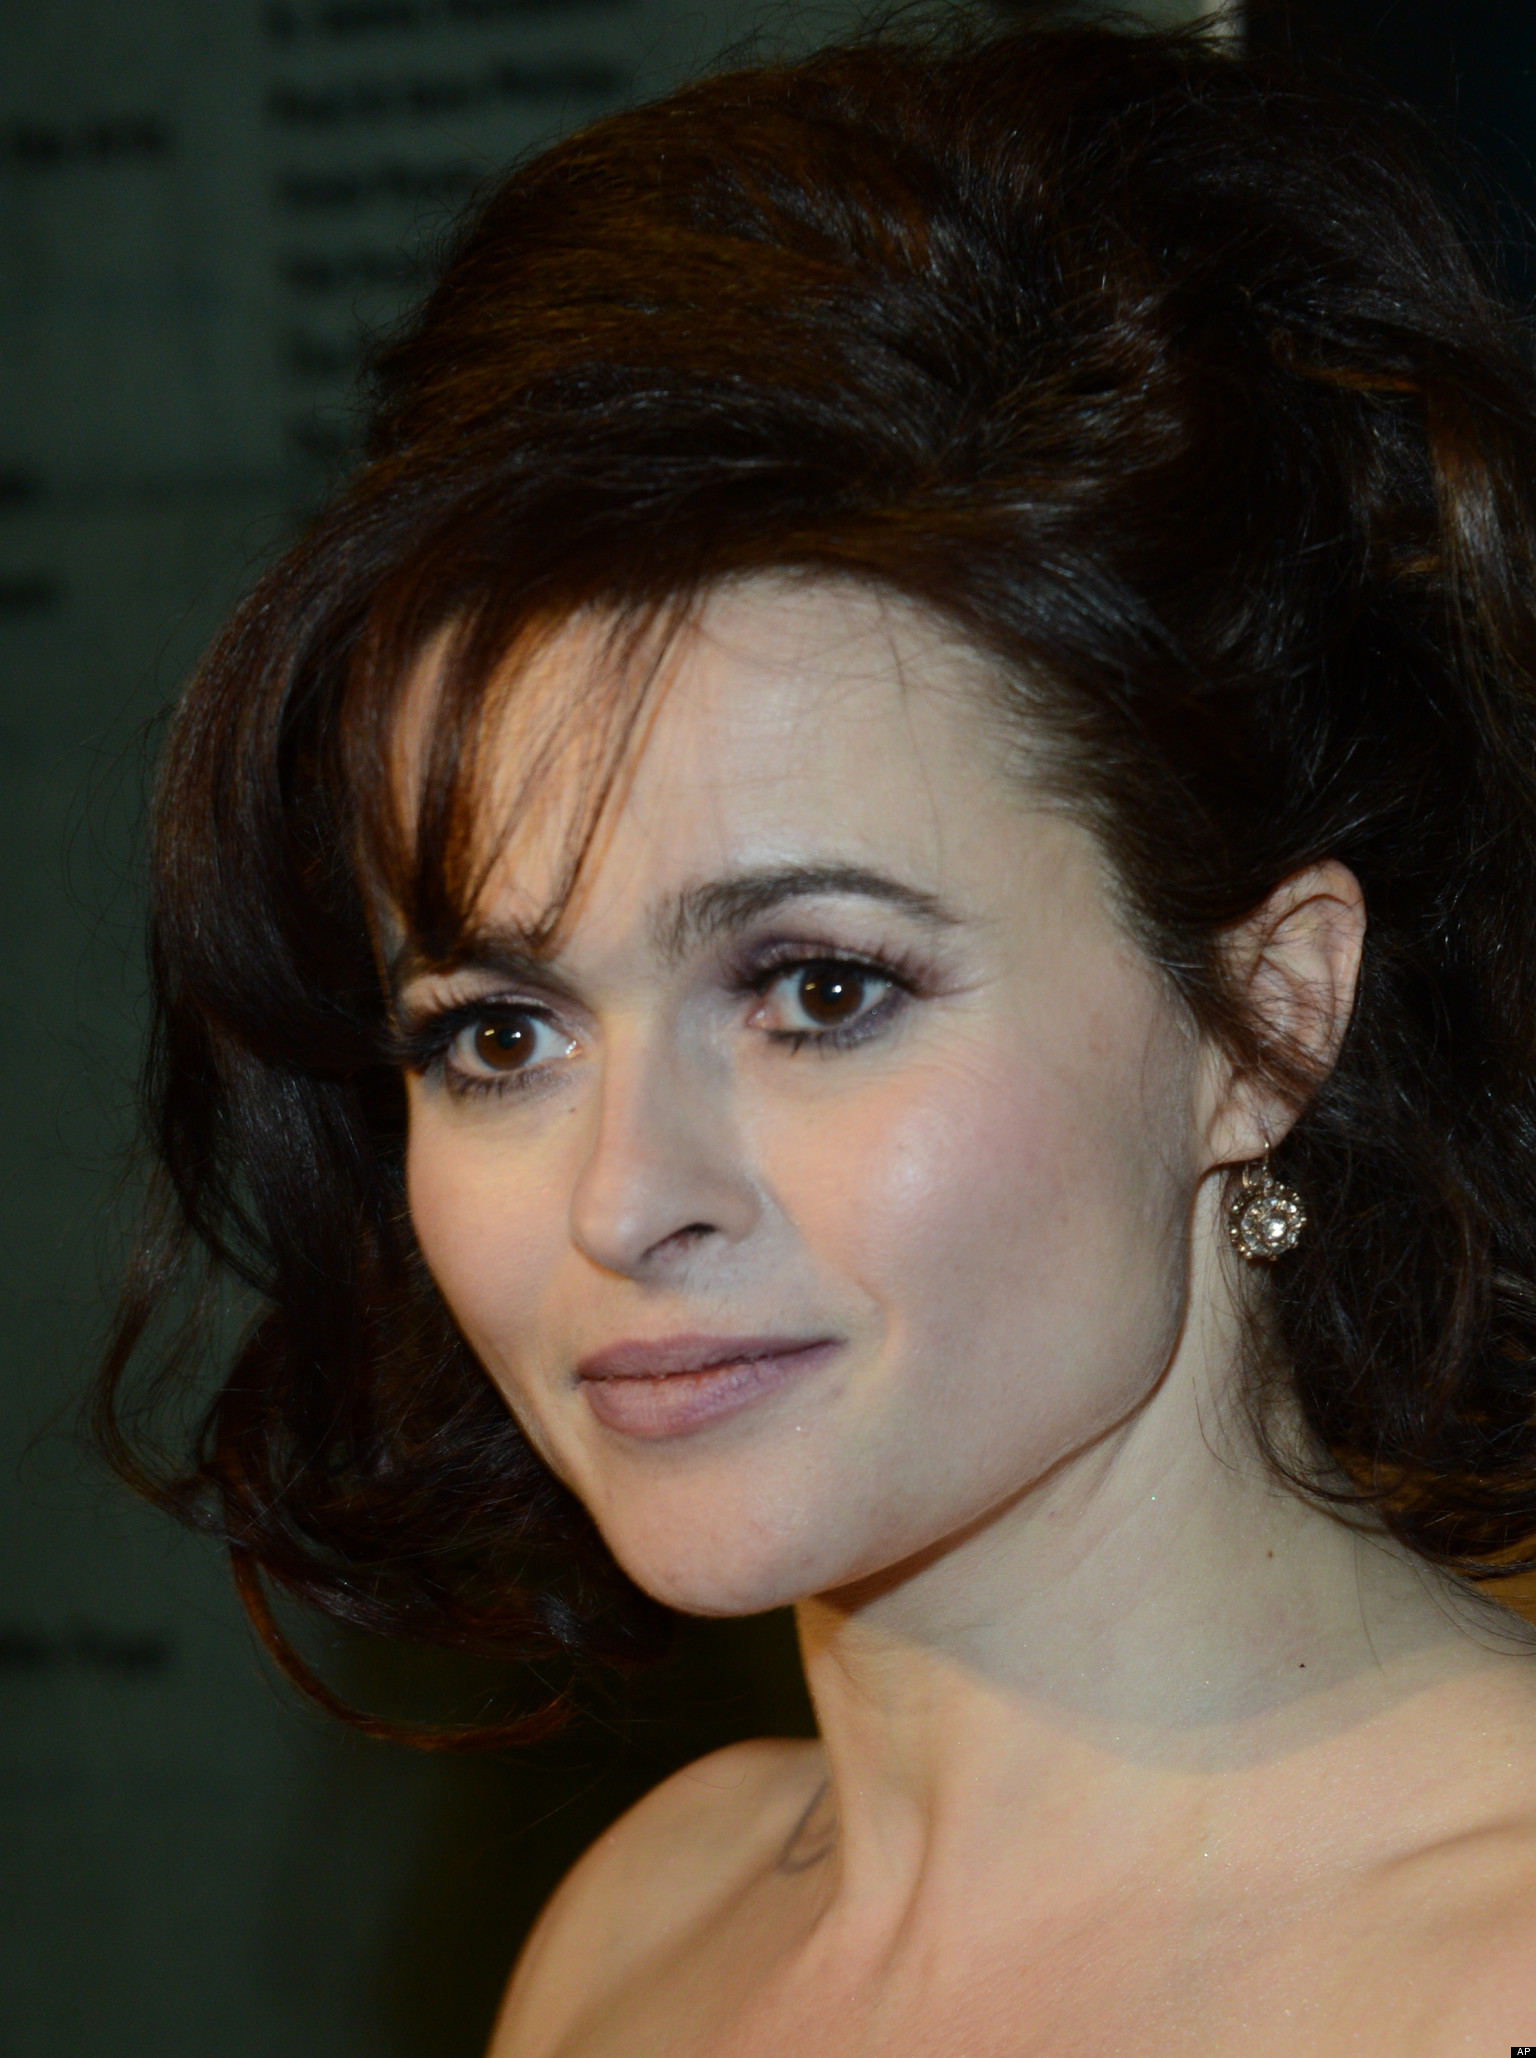 Helena Bonham Carter, 'Les Miserables' Star Is Related To A Colleague Of Author Victor Hugo - o-HELENA-BONHAM-CARTER-LES-MISERABLES-facebook